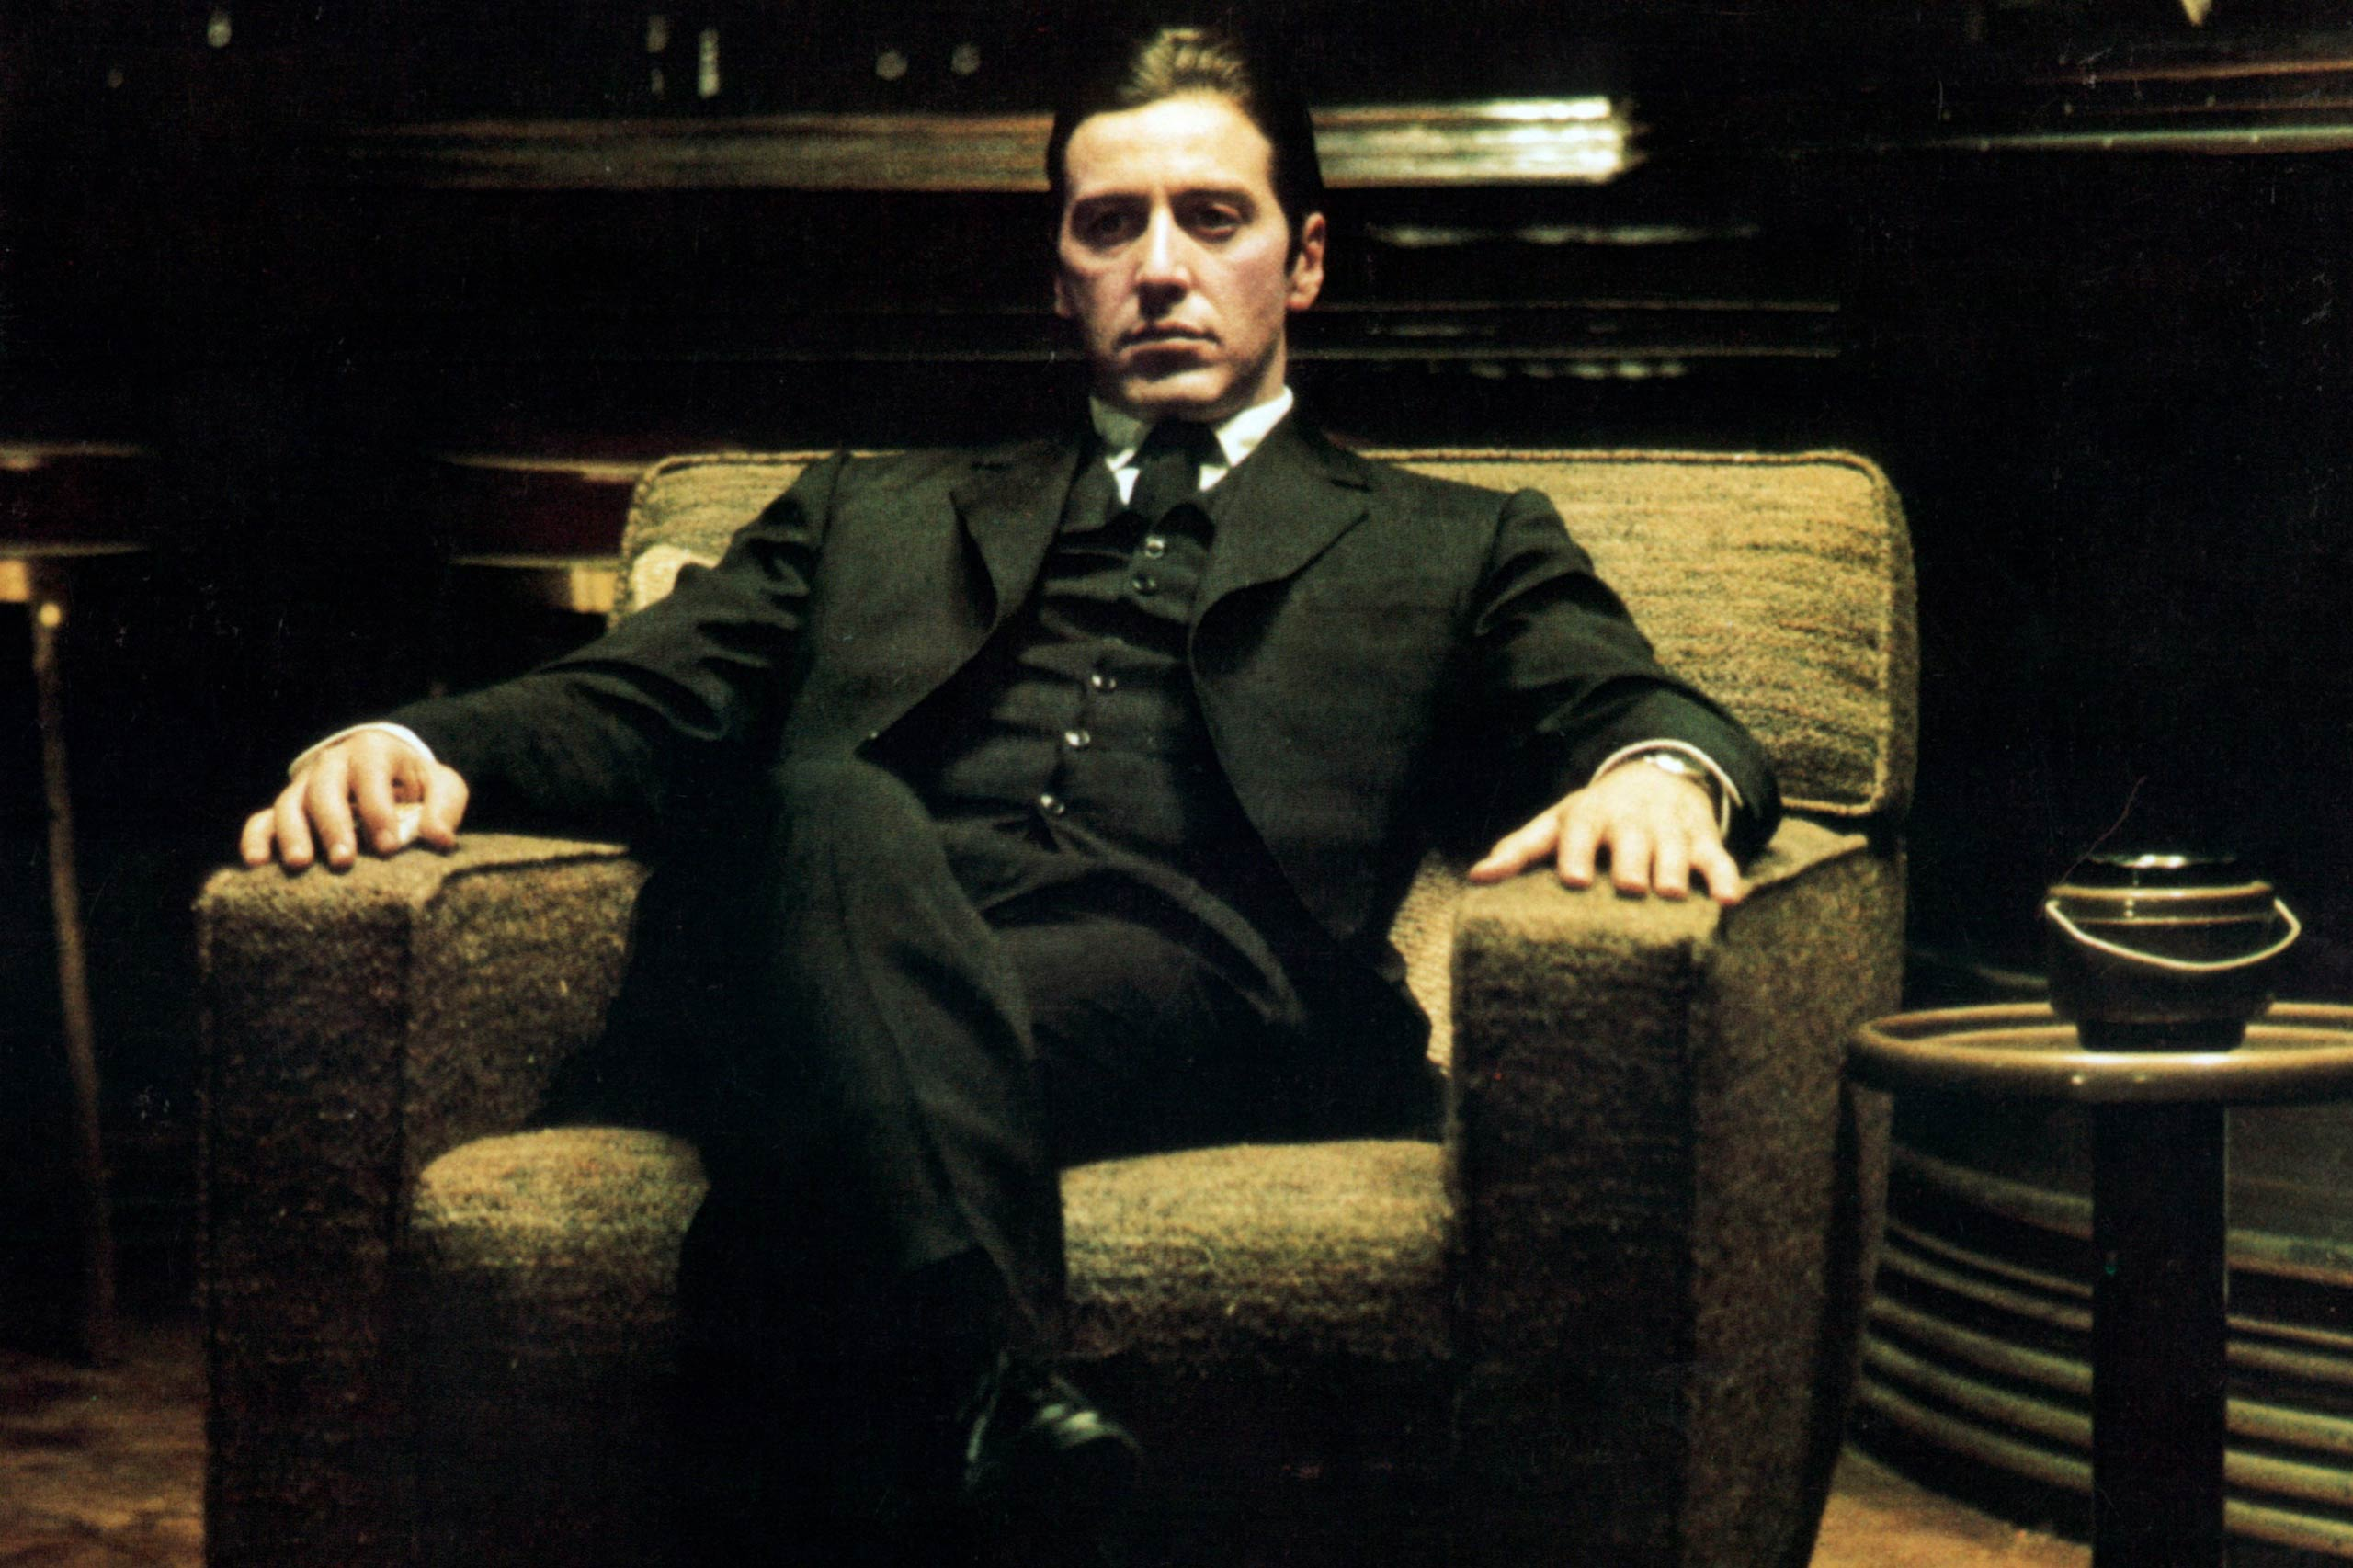 Michael Corleone - The Godfather Part II, 1974